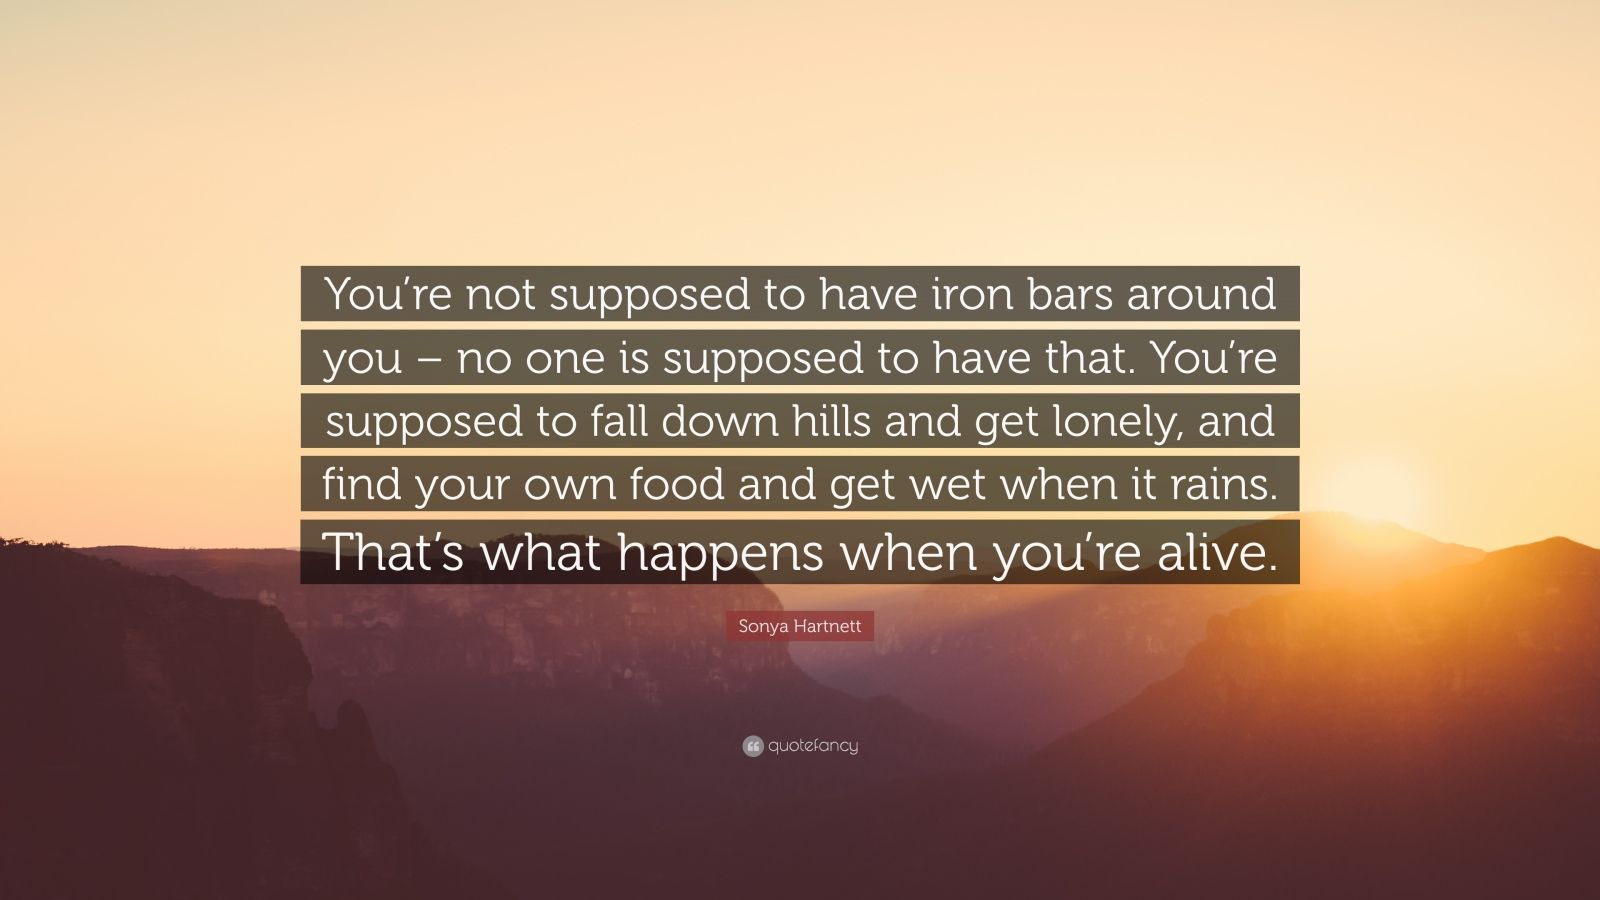 """Sonya Hartnett Quote: """"You're not supposed to have iron bars around you – no one is supposed to have that. You're supposed to fall down hills and get lonely, and find your own food and get wet when it rains. That's what happens when you're alive."""""""